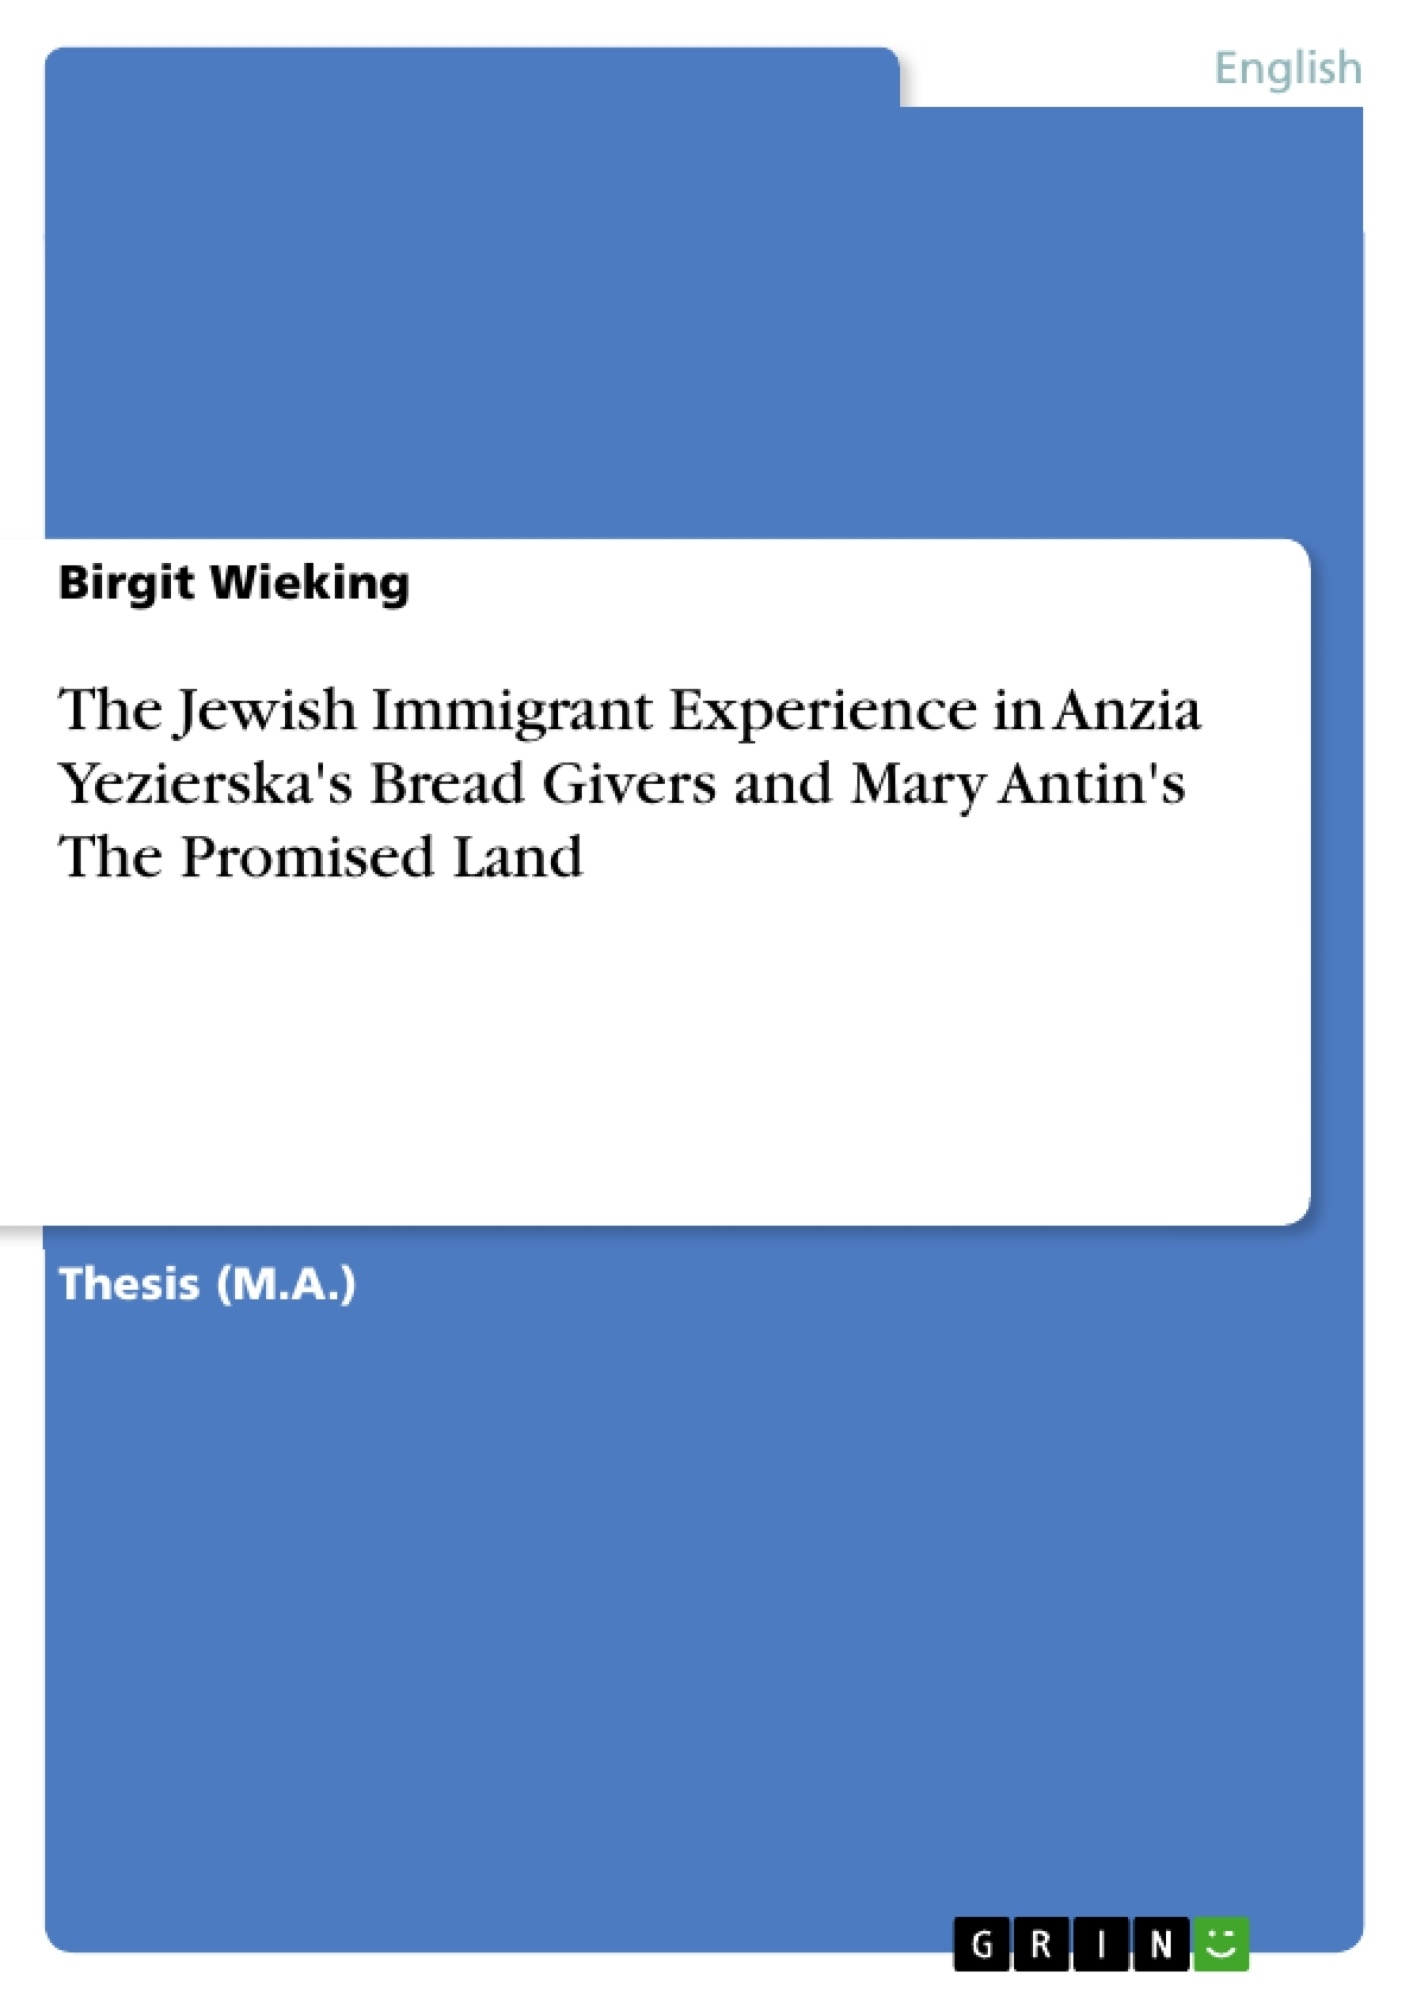 Title: The Jewish Immigrant Experience in Anzia Yezierska's Bread Givers and Mary Antin's The Promised Land